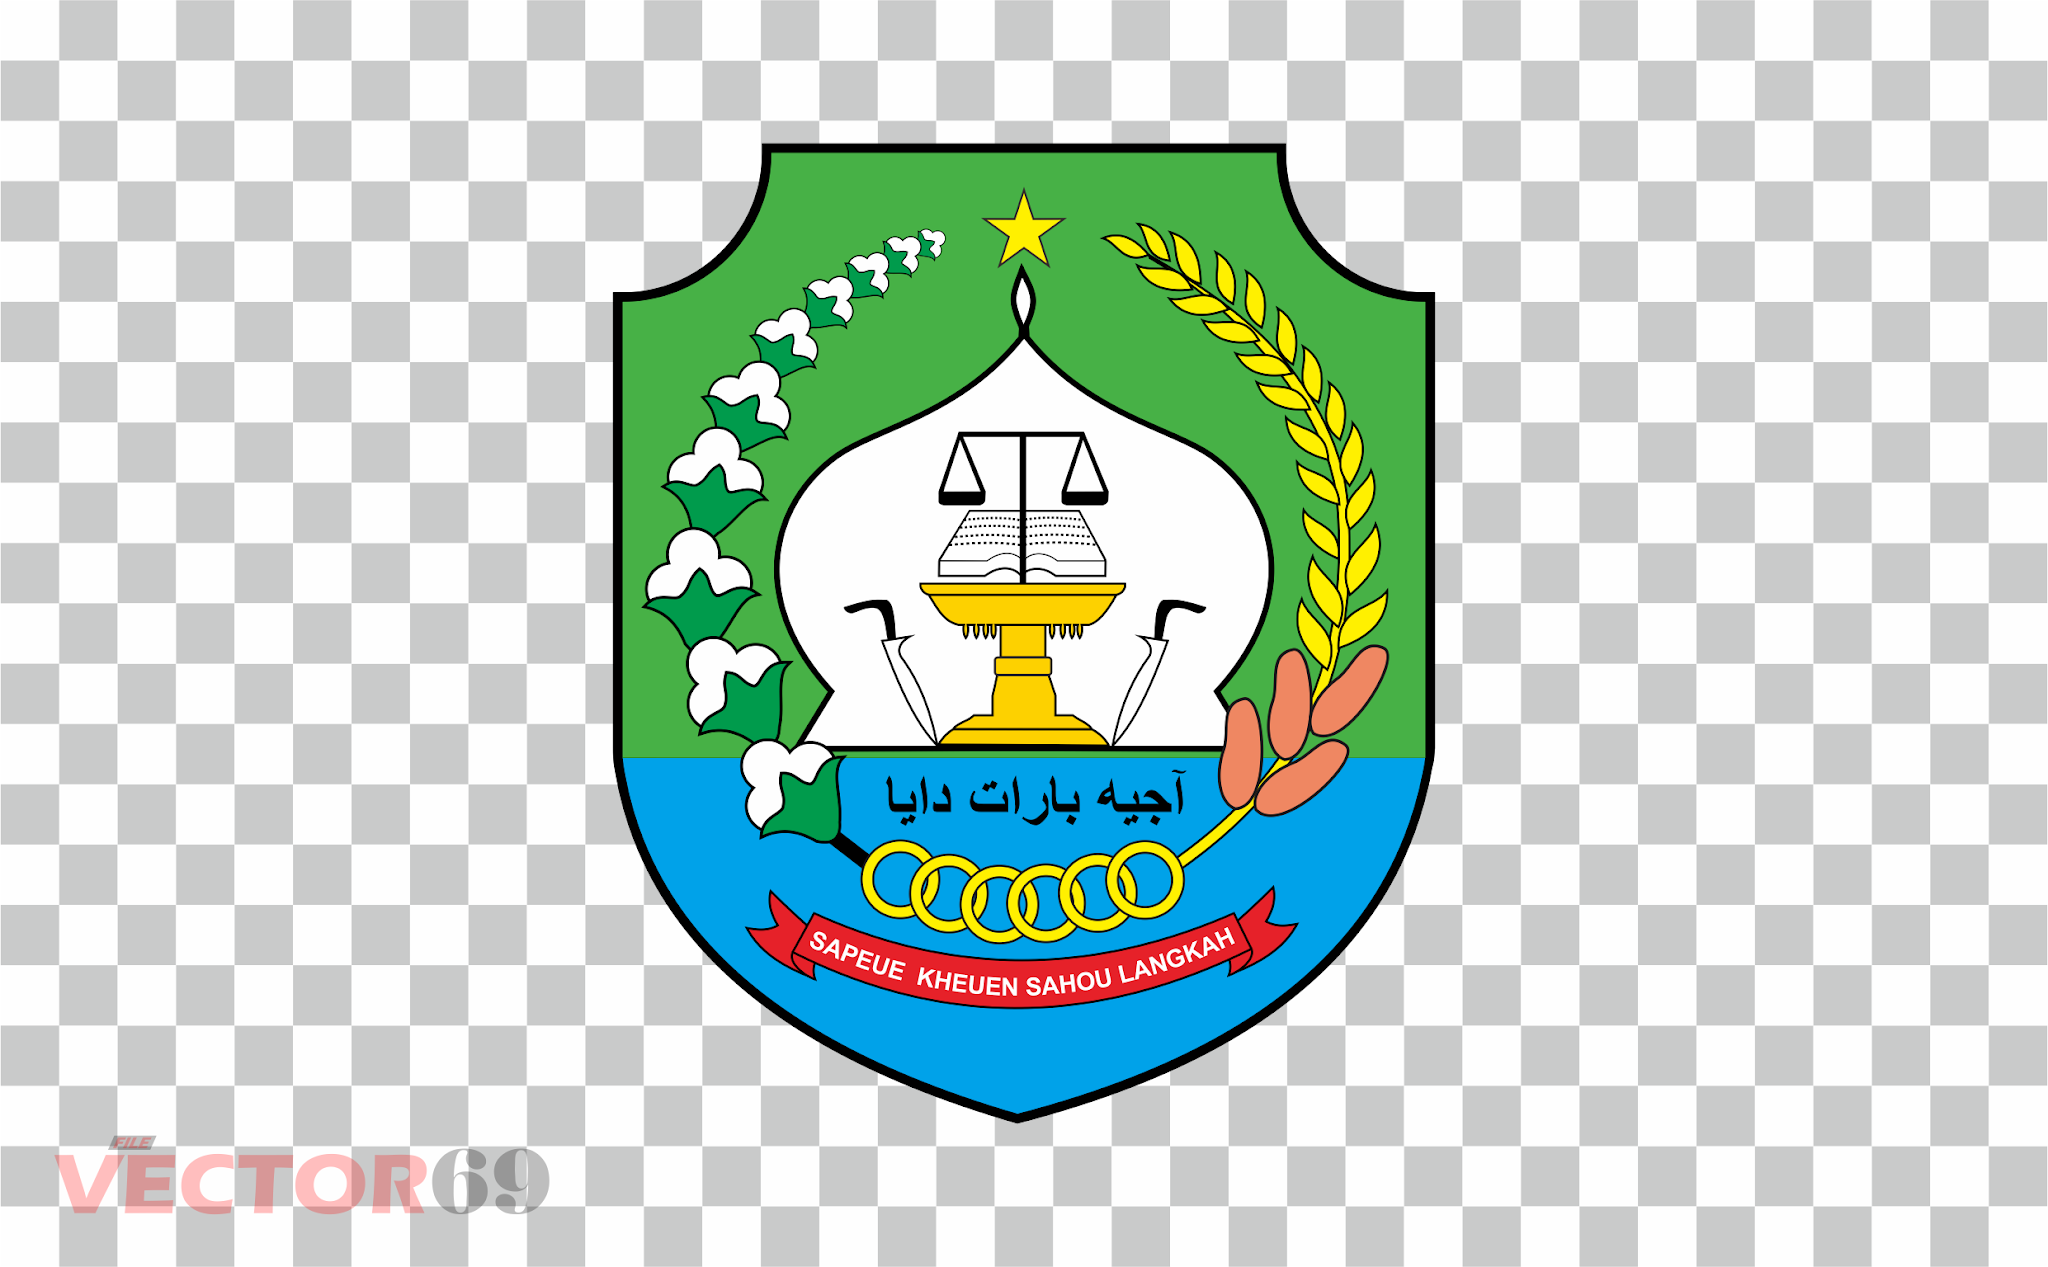 Kabupaten Aceh Barat Daya Logo - Download Vector File PNG (Portable Network Graphics)